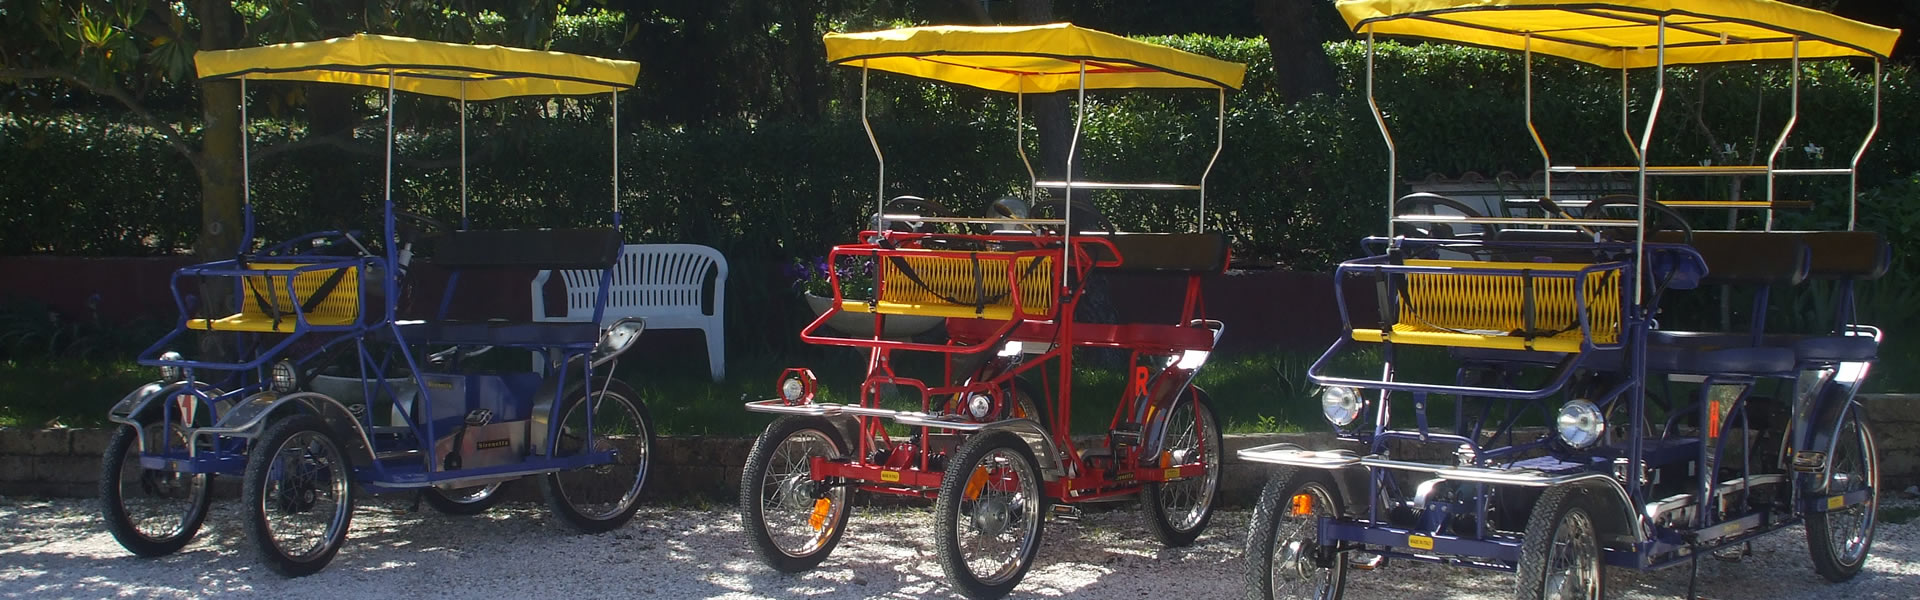 Rickshaw rental in Favignana